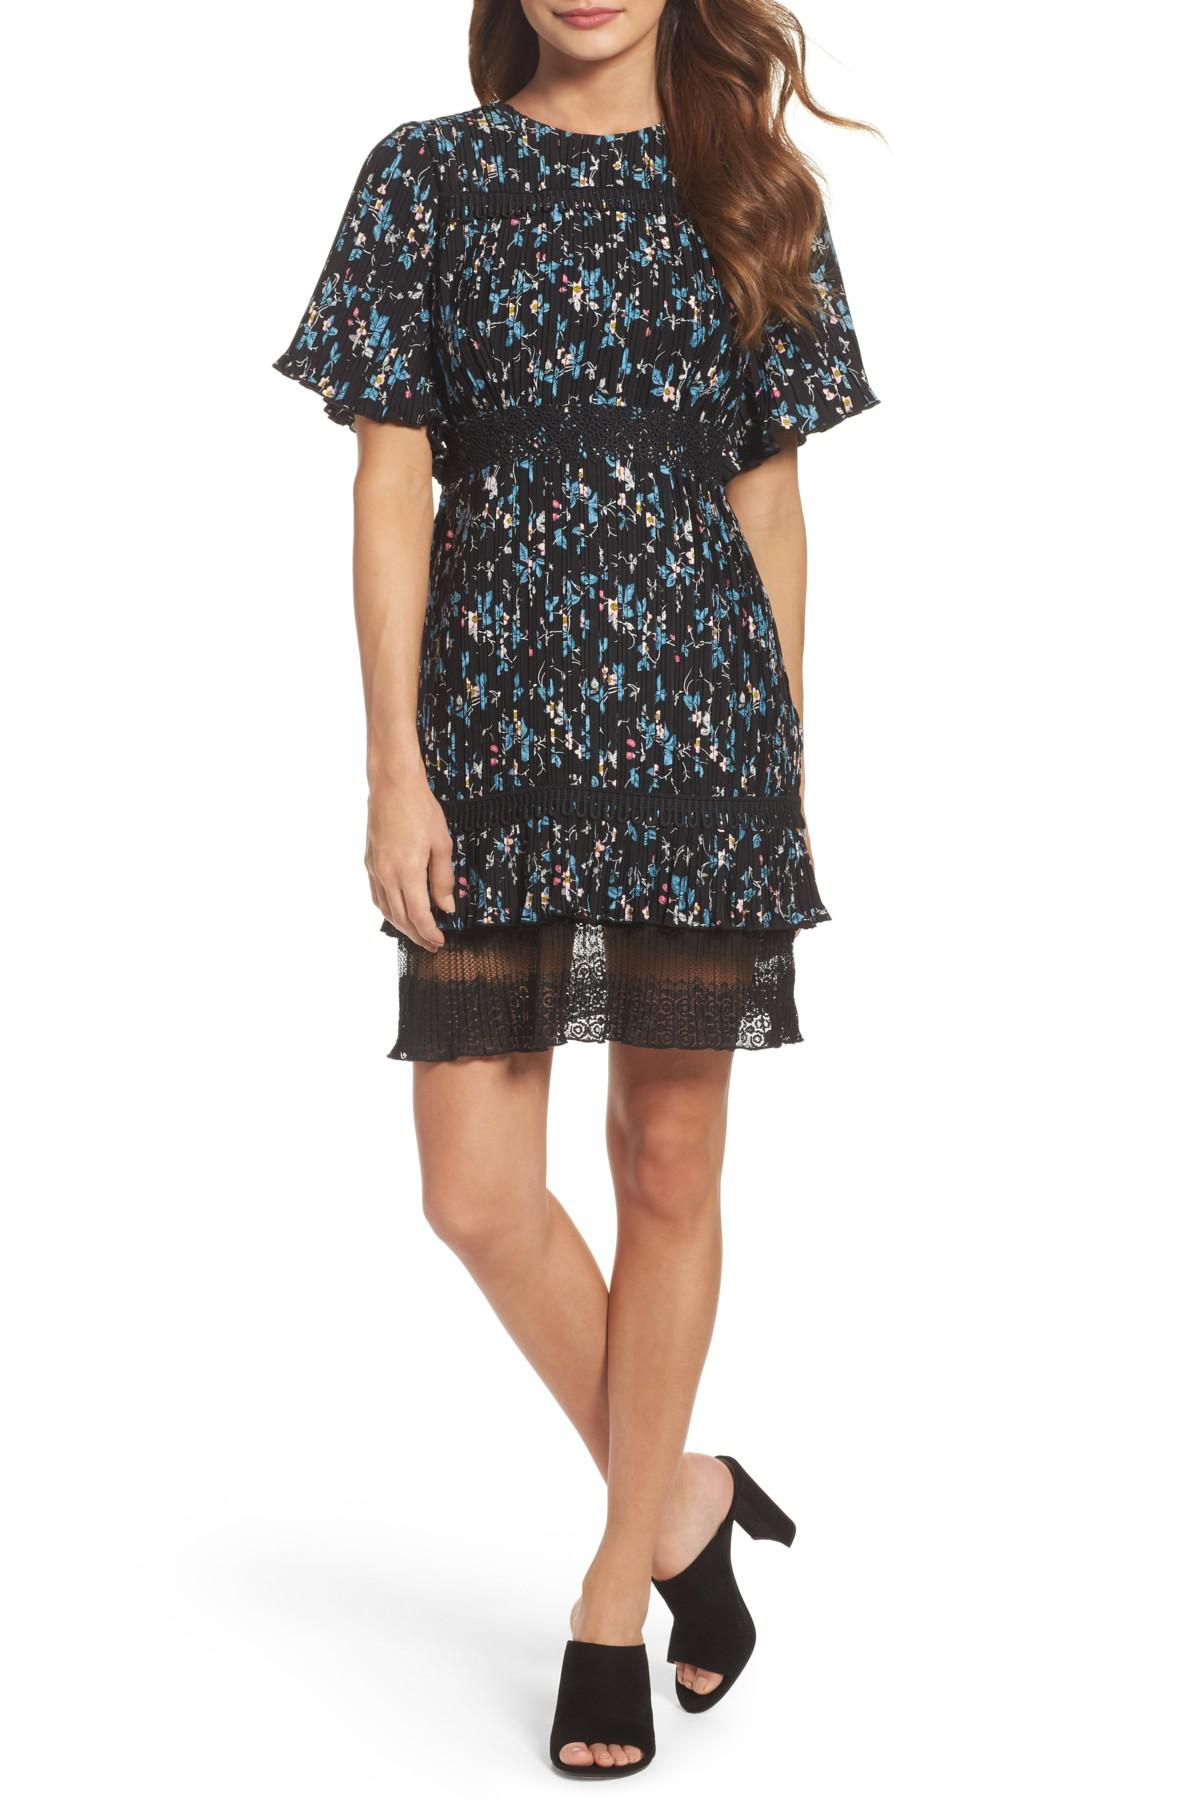 Lyst Chelsea28 Pleated Lace Dress In Black